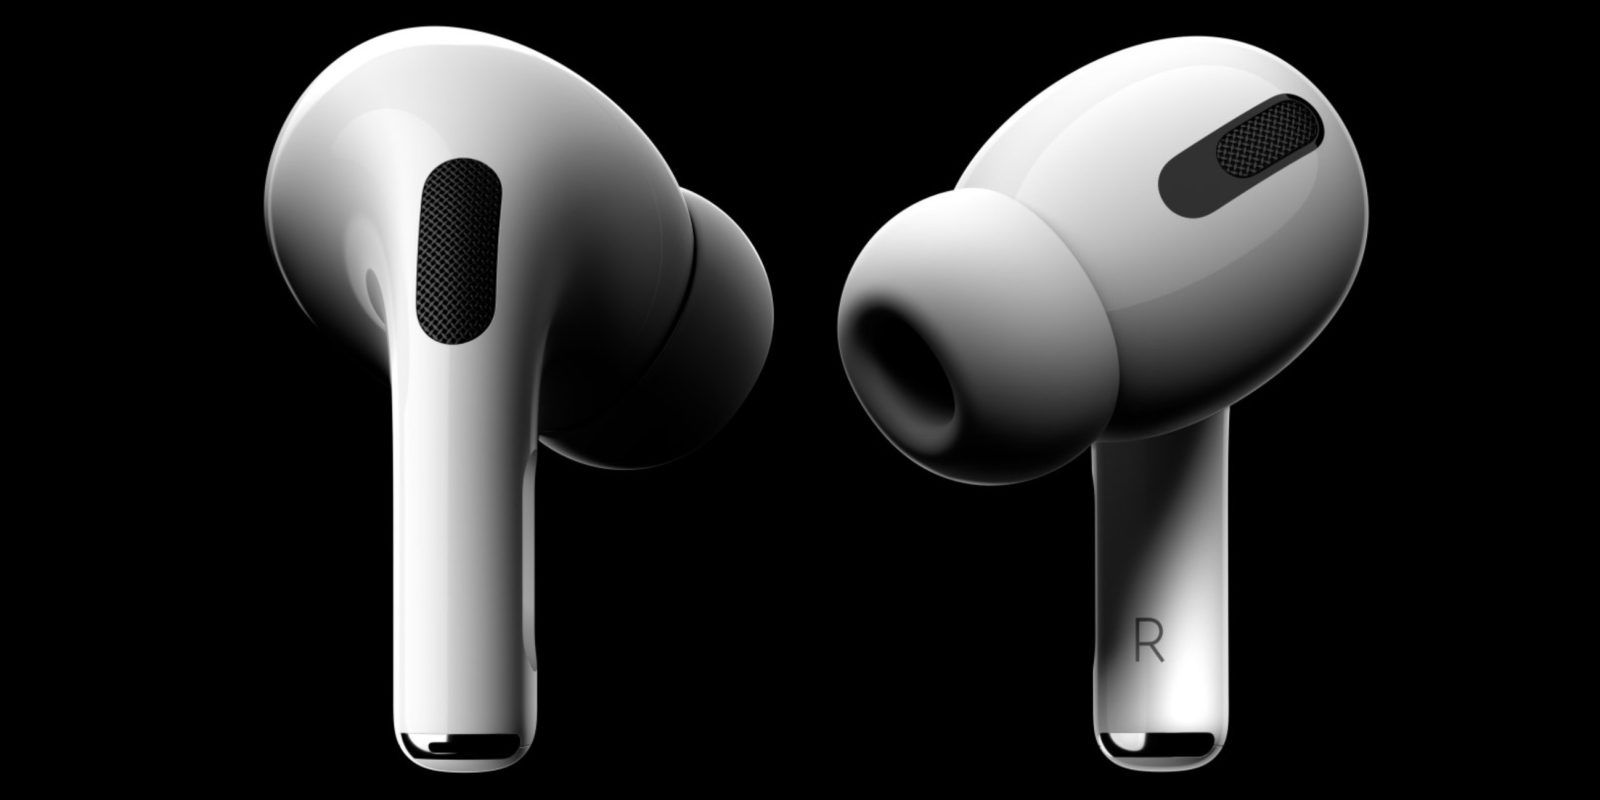 What S The Difference In Airpods And Airpods Pro Here S How Size Price And Features Compare Airpods Pro Airpods Comparison Active Noise Cancellation